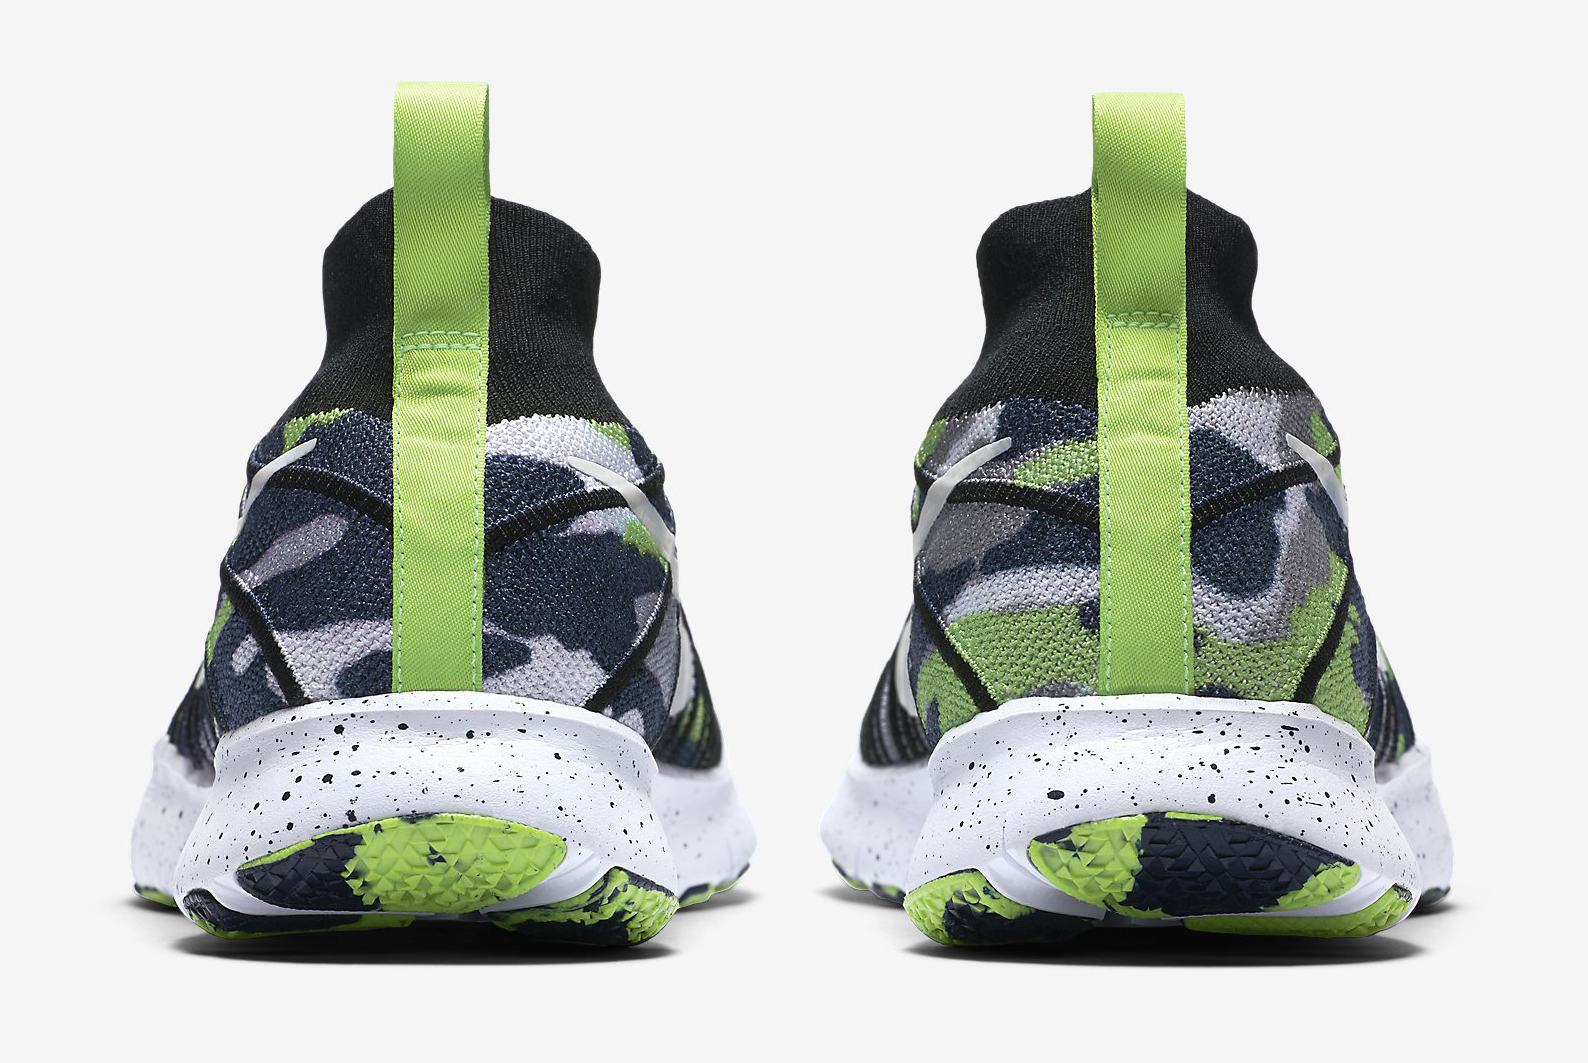 Russell Wilson Kids Nike Shoes